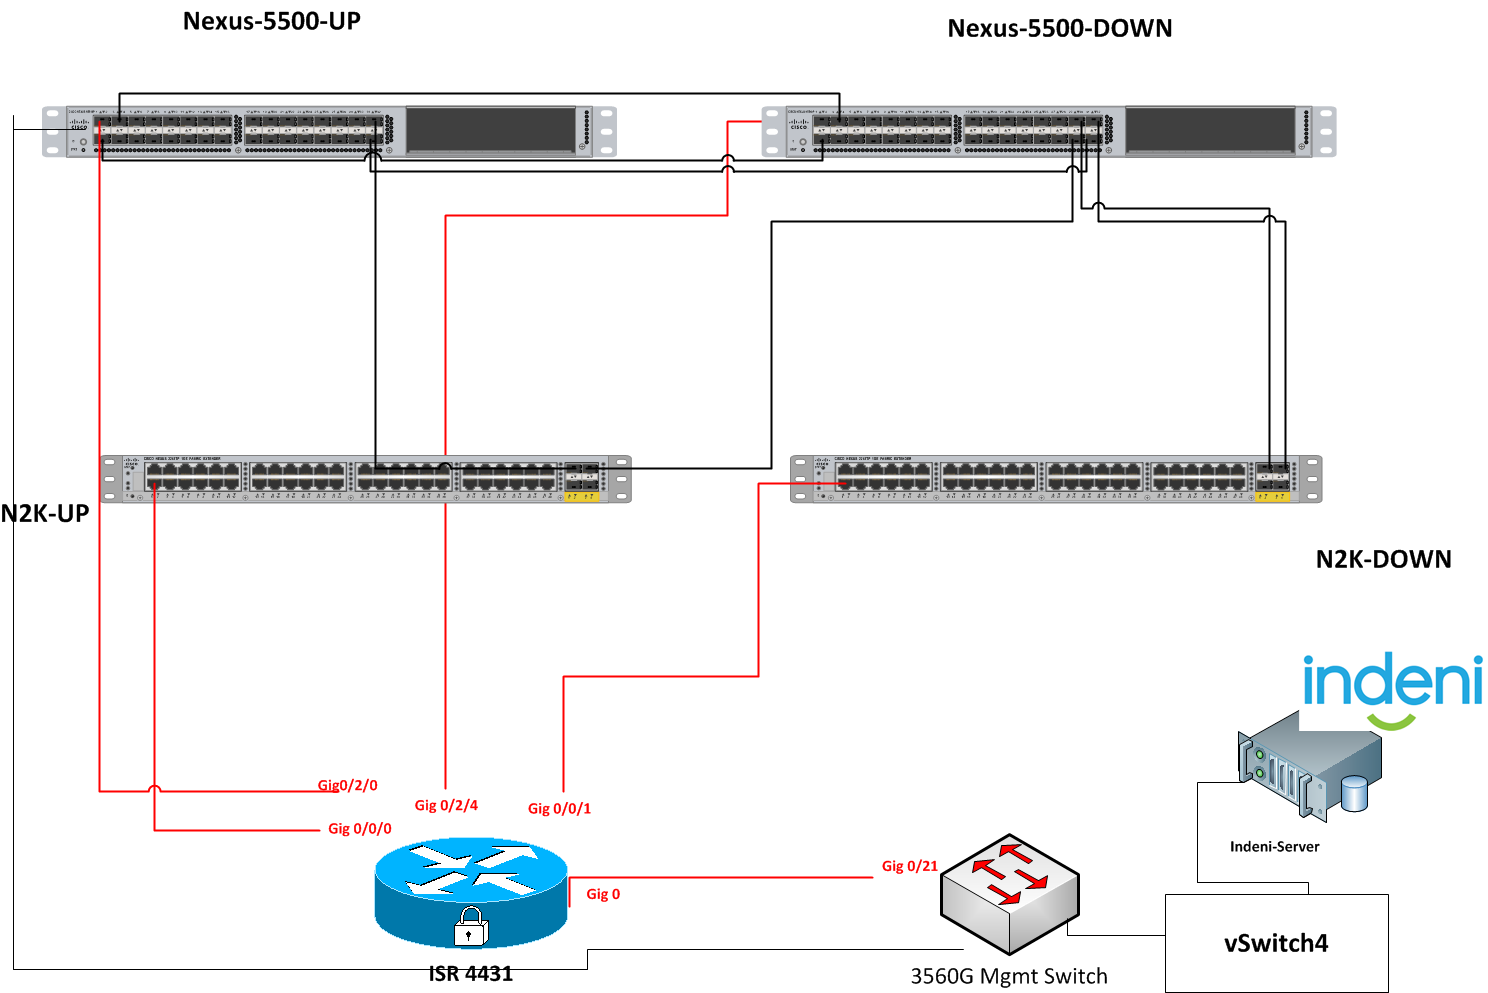 Deployment Of The Cisco Nexus Fex Technology And Analysis By Indeni 7 Circuit Diagram Lab Physical Topology